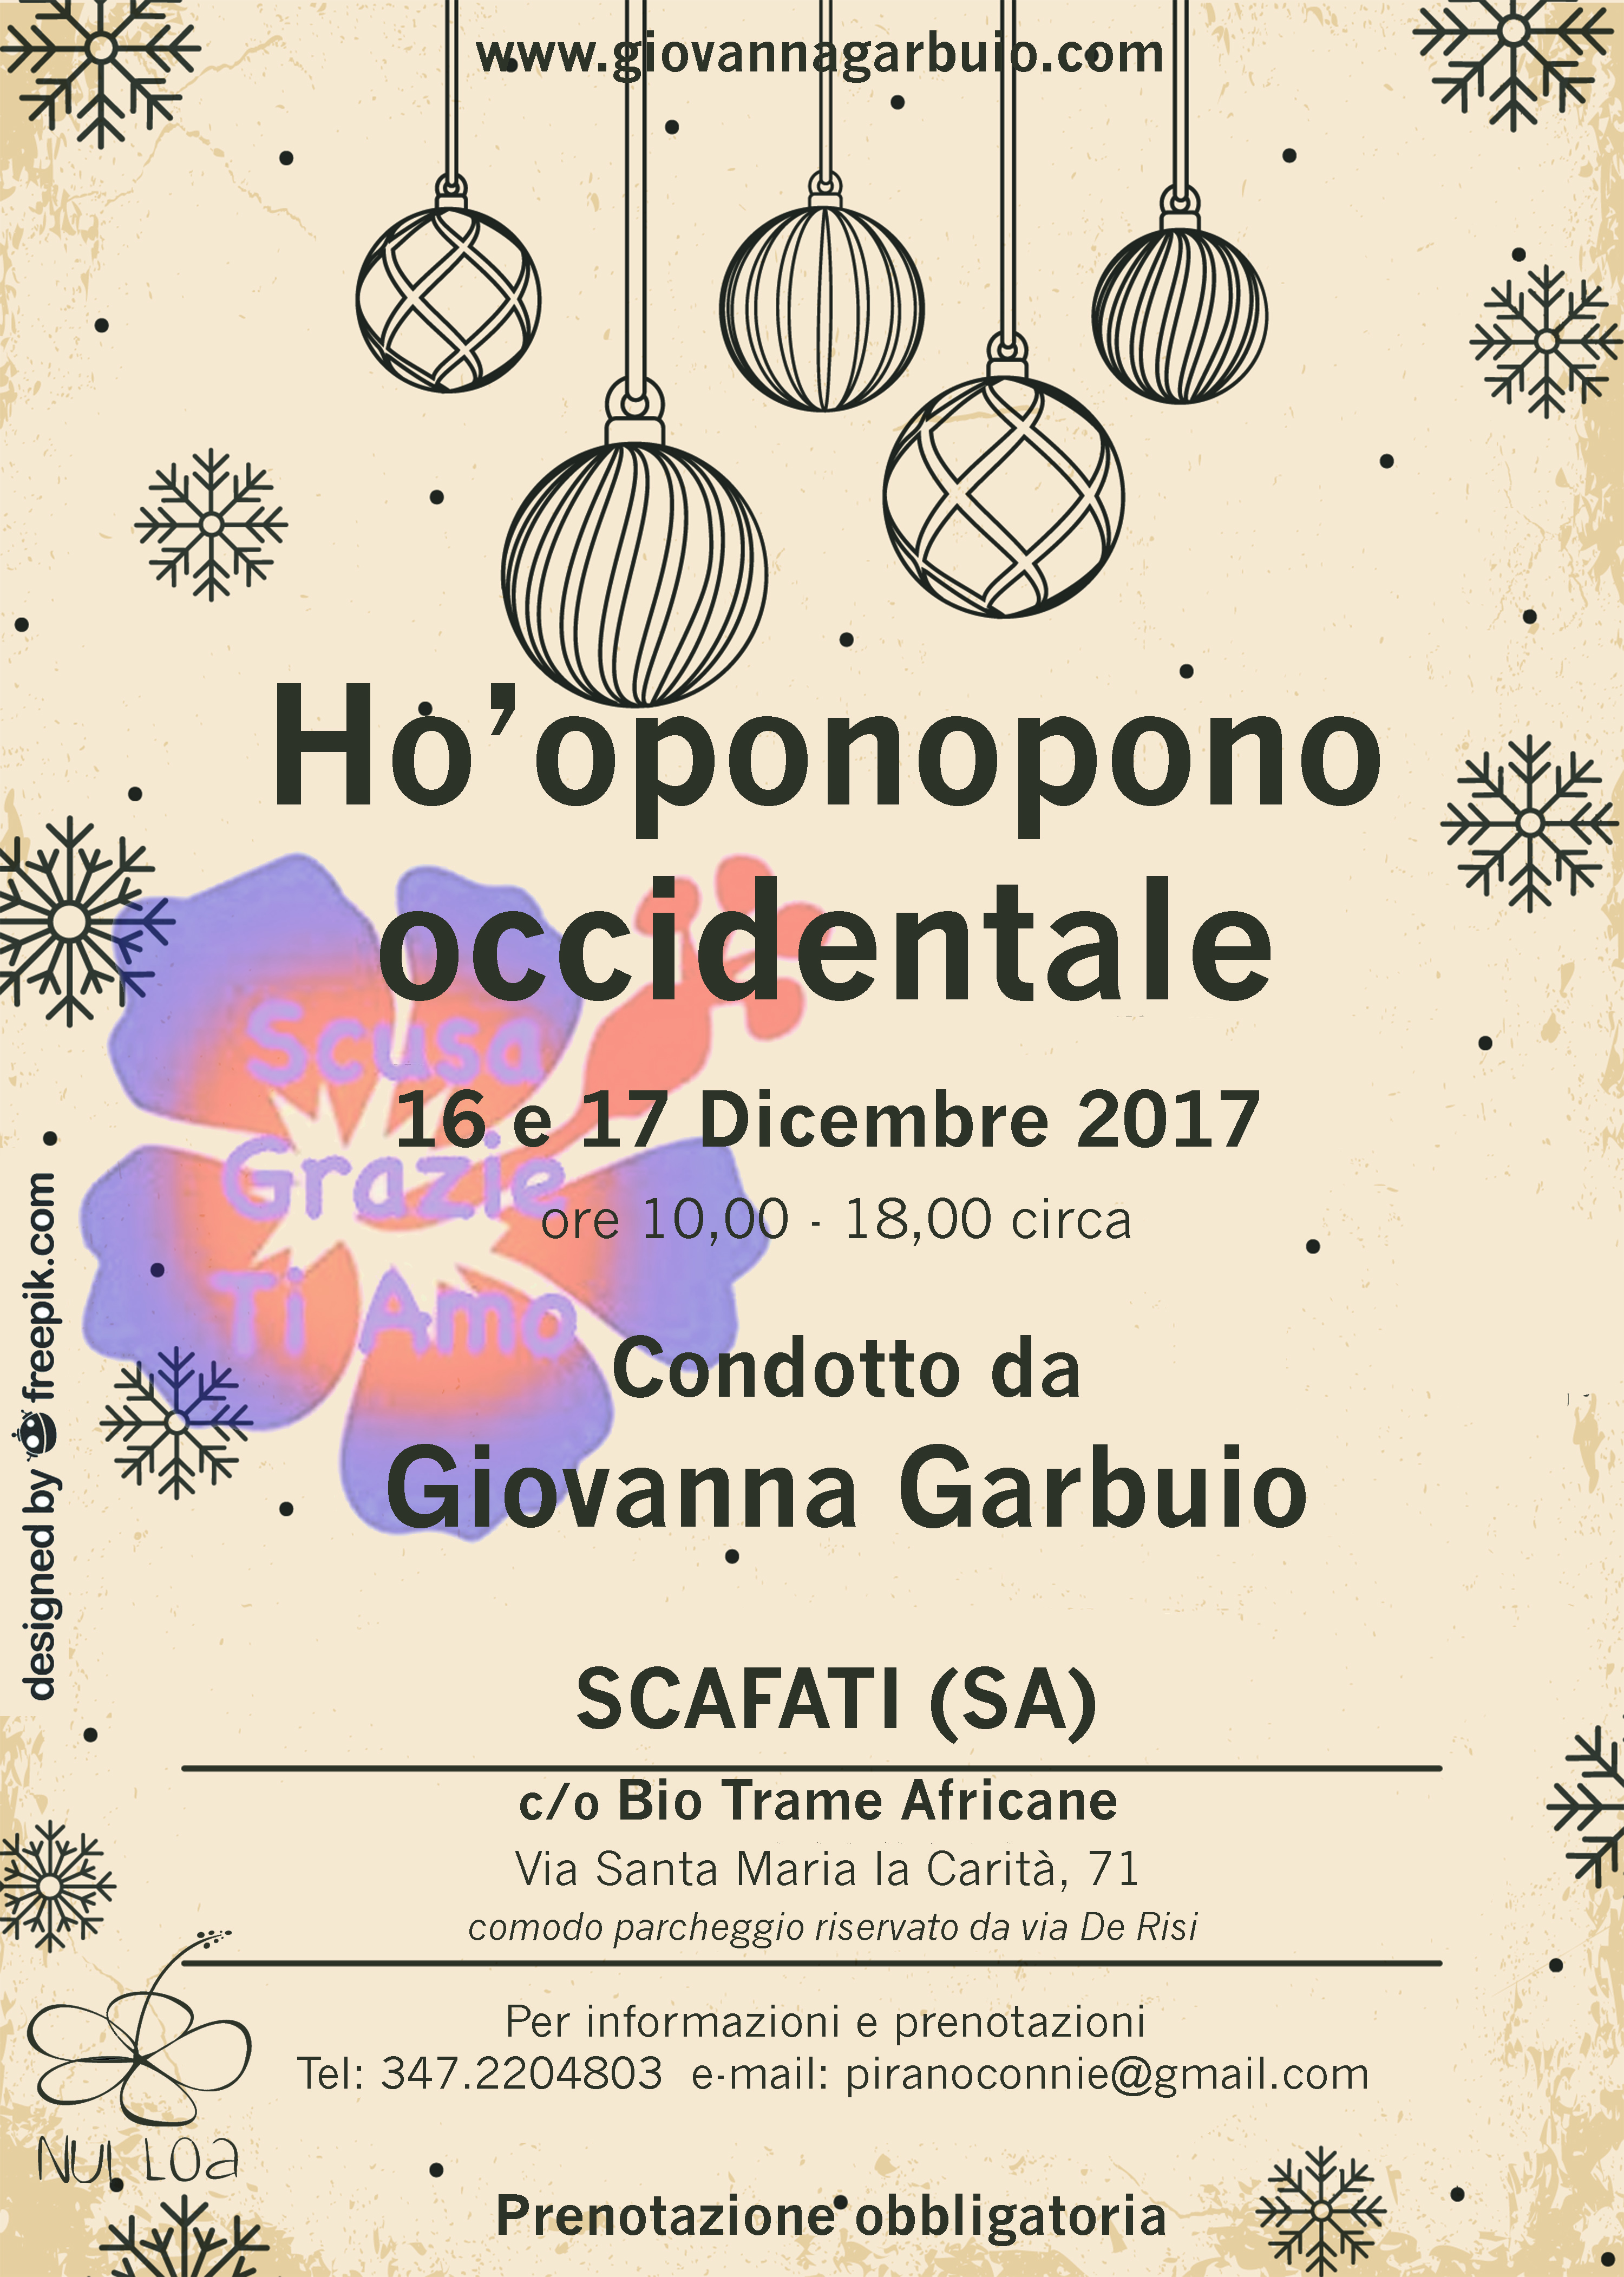 Salerno Ho'oponopono occidentale seminario